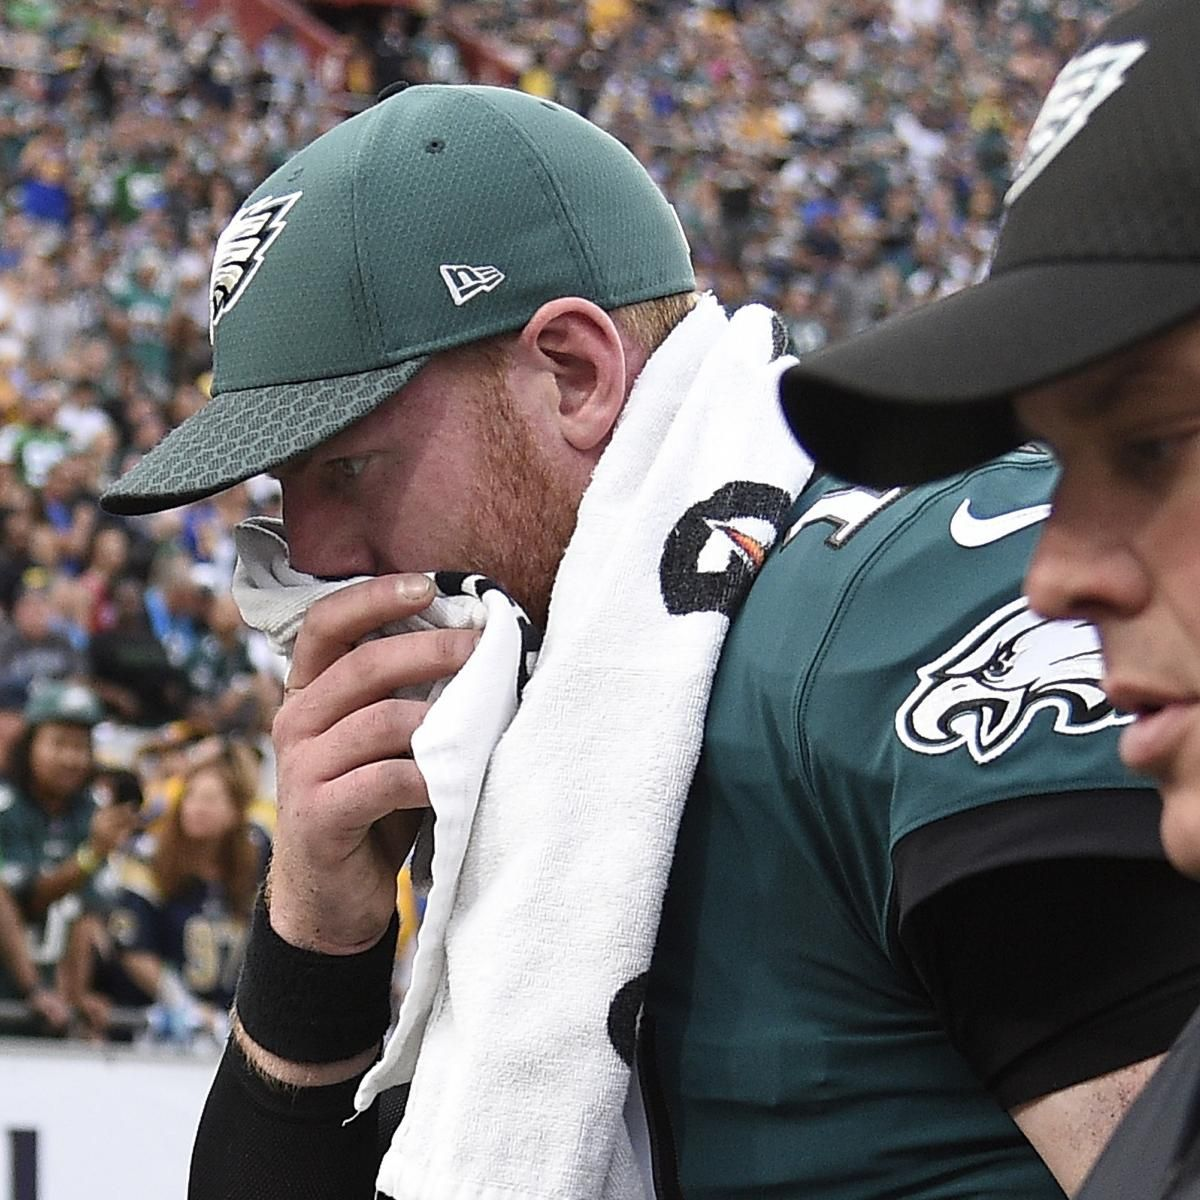 Carson Wentz's Knee Injury Revealed to Be Torn ACL, Out